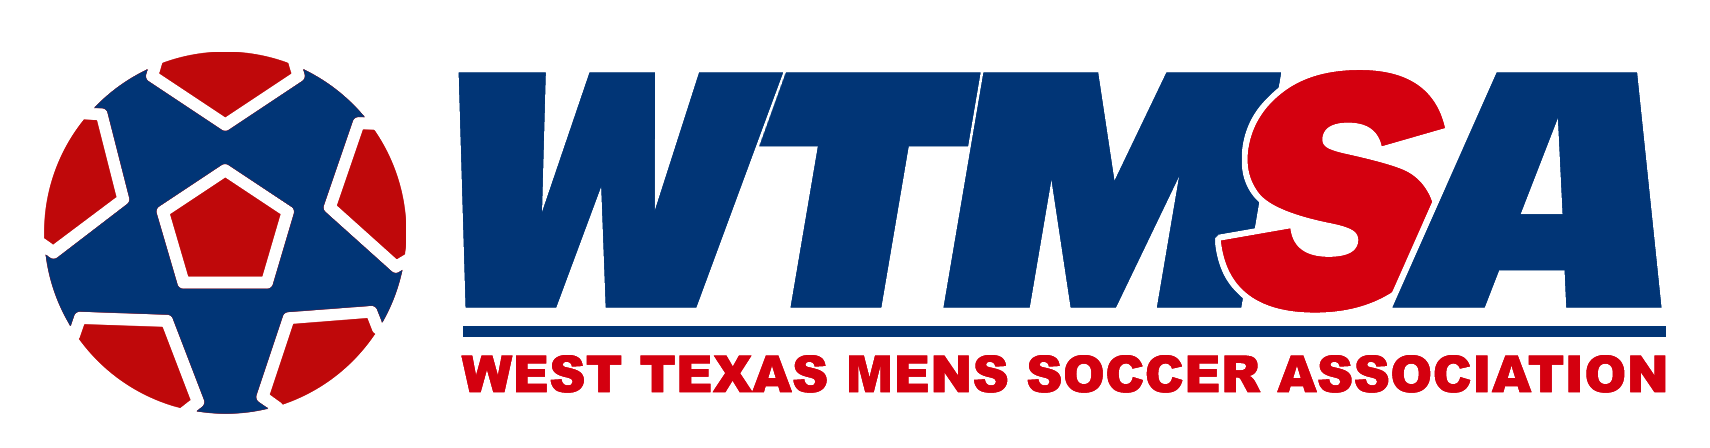 West Texas Mens Soccer Association